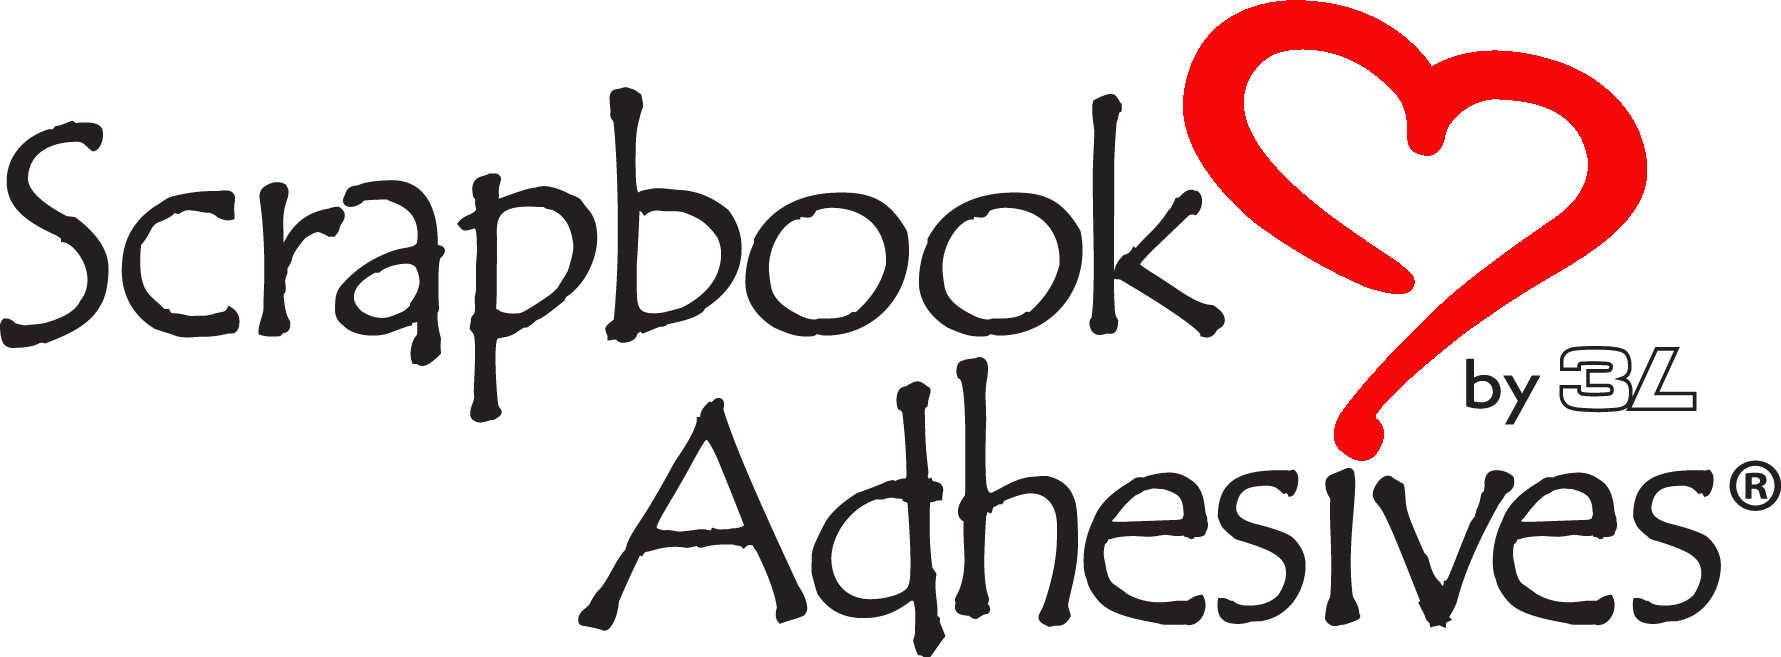 Image result for scrapbook adhesives by 3L logo